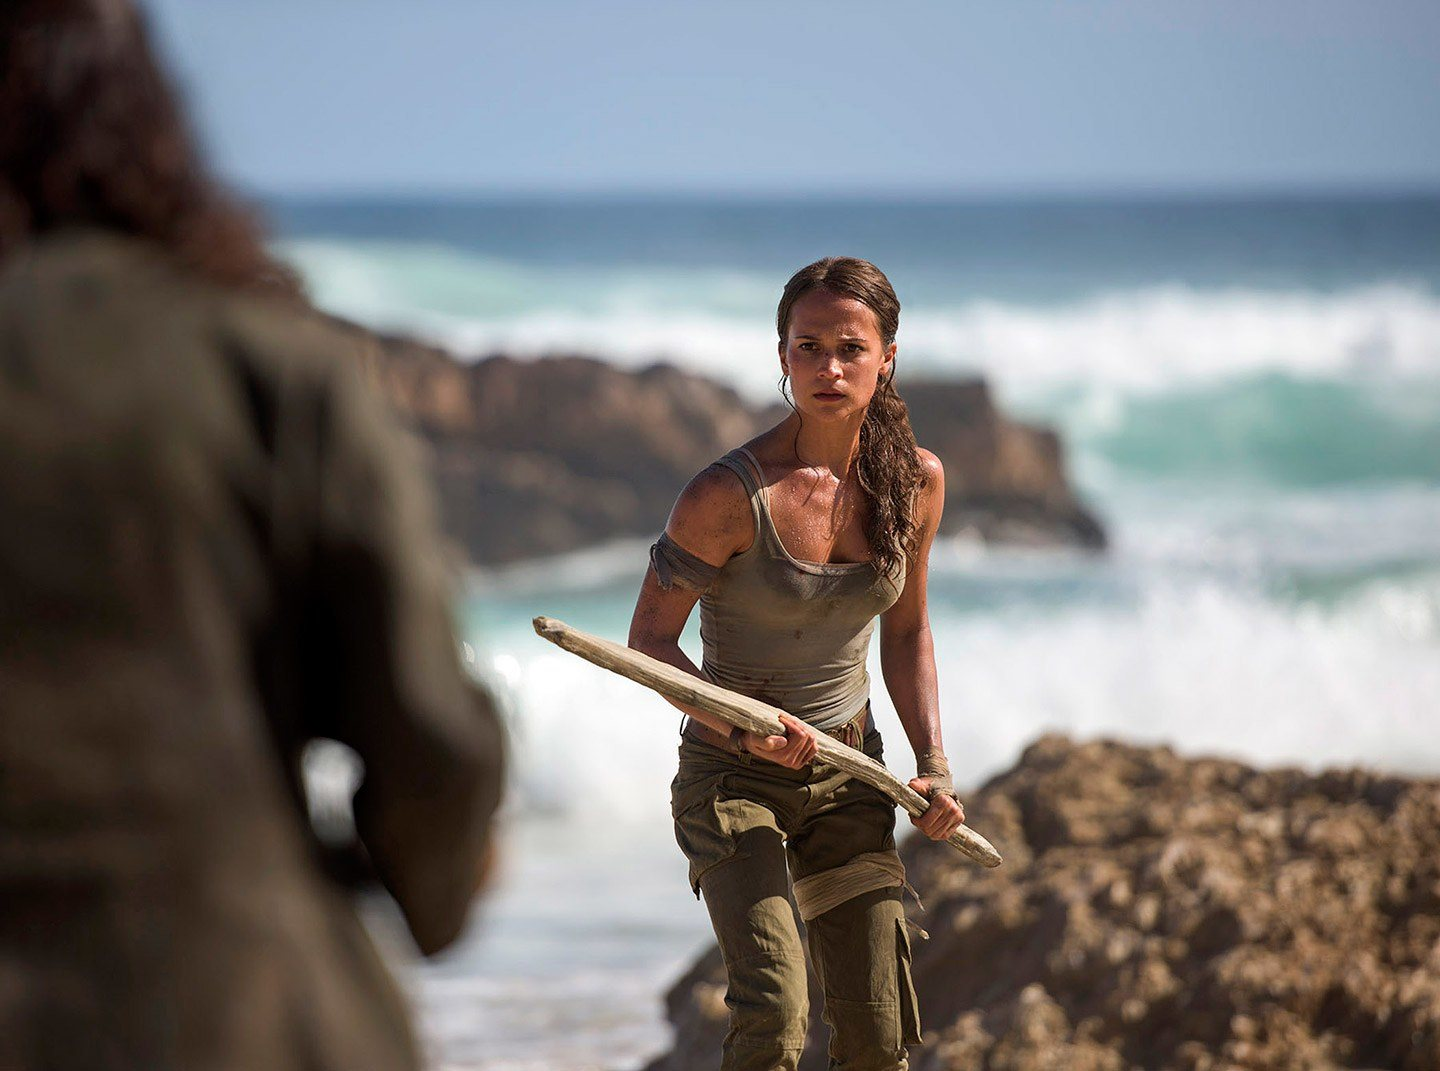 Alice Vikander plays Lara Croft in the Tomb Raider reboot|